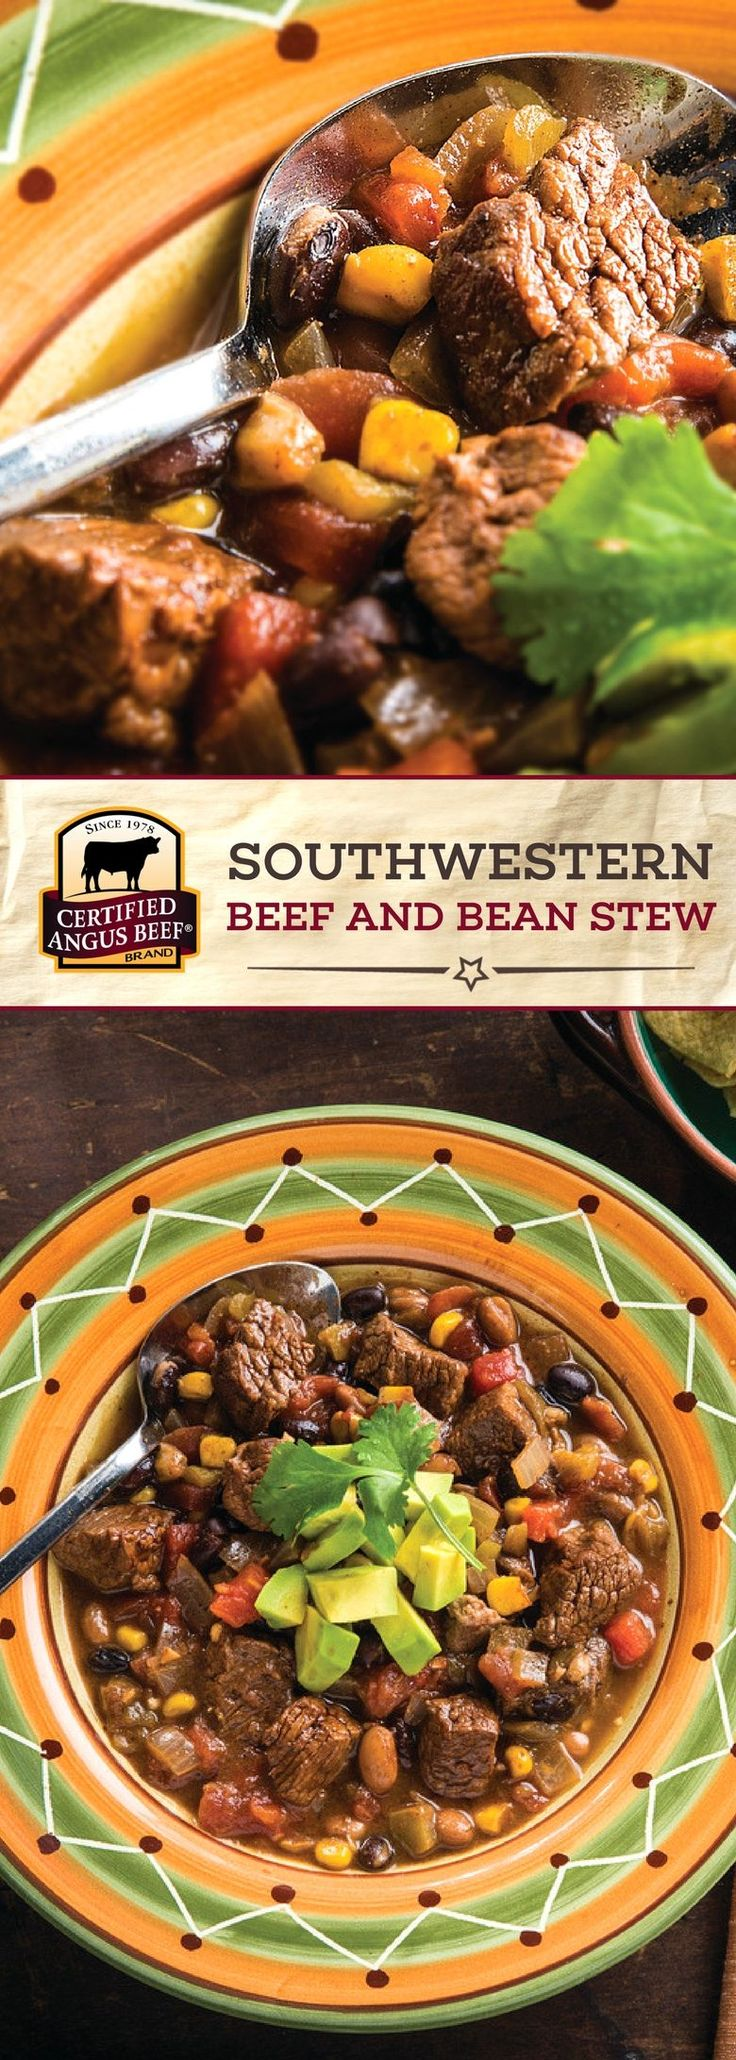 This TASTY Southwestern Beef and Bean Stew is made with Certified Angus Beef ®️ brand chuck arm roast for the BEST beef flavor! Cooked with onion, garlic, cumin and ancho pepper, as well as tomatoes and green chilies, this beef recipe is DEEPLY flavorful! Black beans, pinto beans, and sweet corn add another layer of comfort to this easy stew recipe. #bestangusbeef #certifiedangusbeef #beefrecipe #stewrecipe